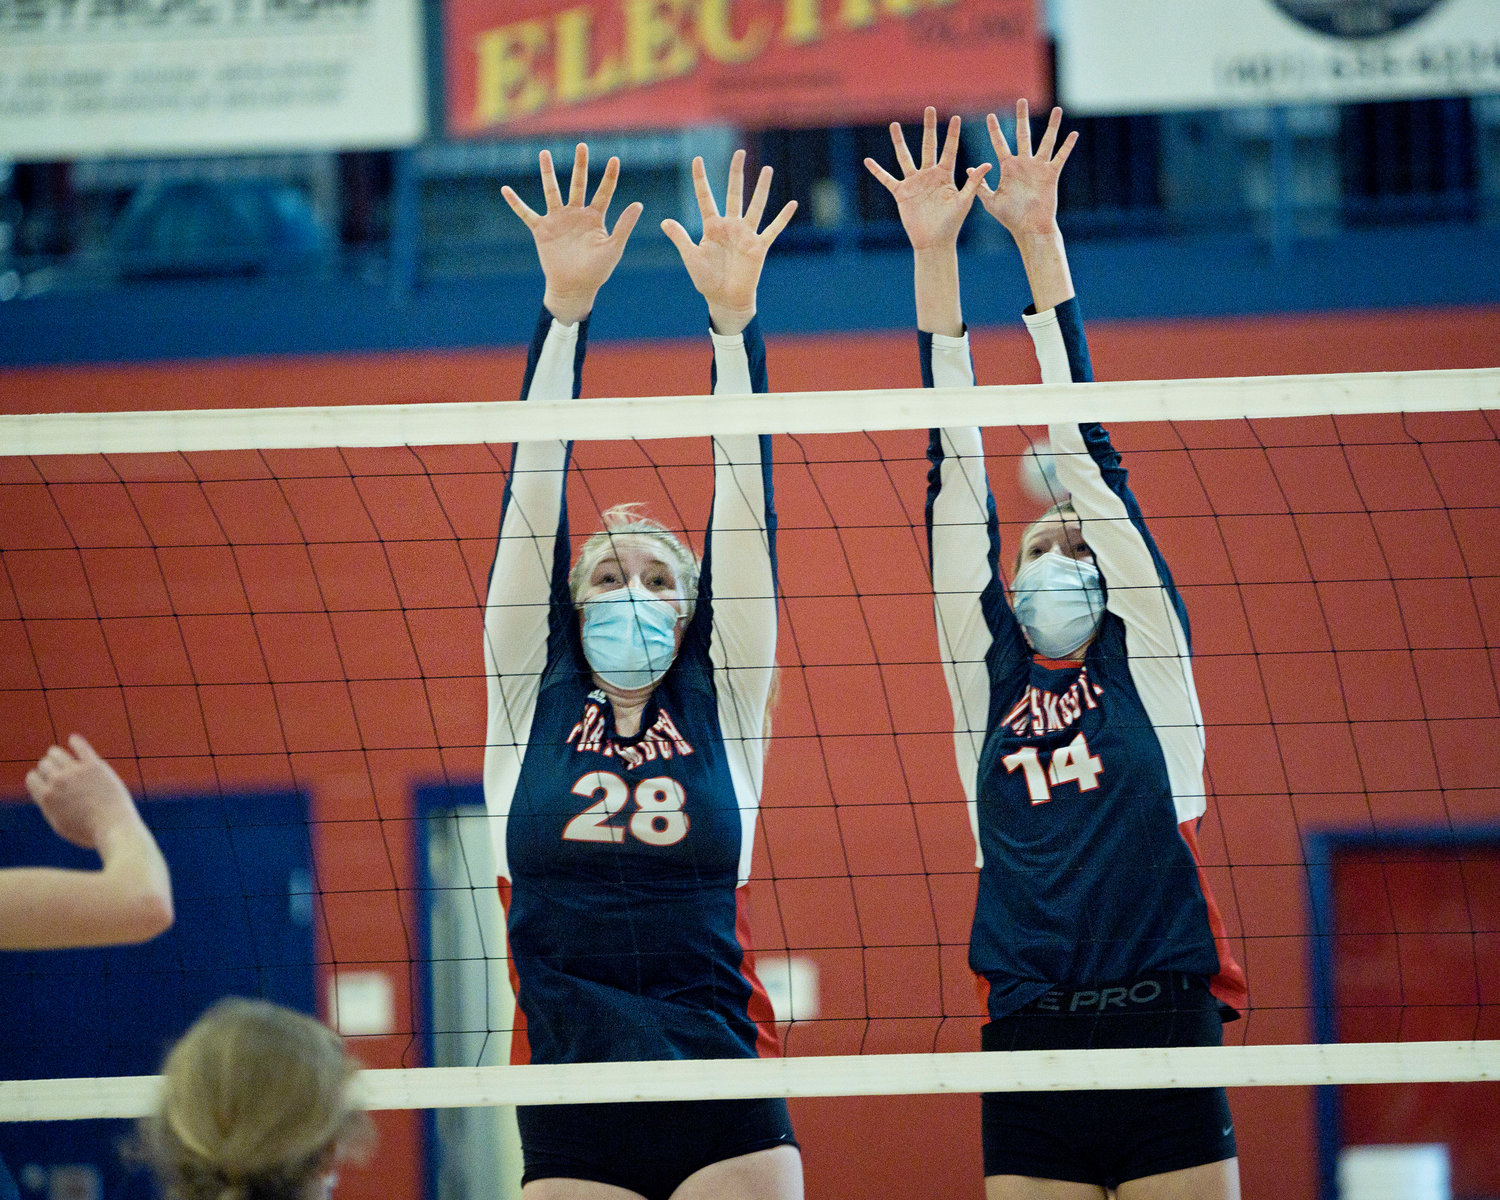 Portsmouth High's Tatum Horley (left) and Morgan Casey defend the net during Tuesday night's game against Bay View, won by the Patriots in straight sets.